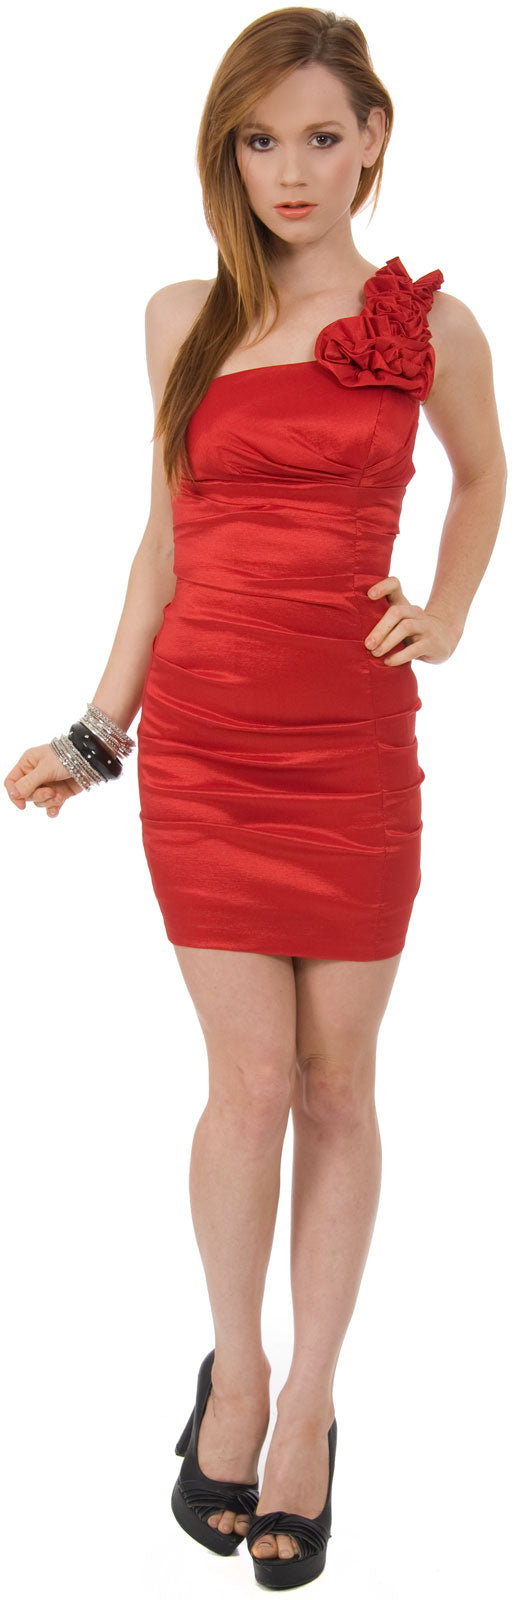 Main image of Single Shoulder Form Fittingruched Party Dress